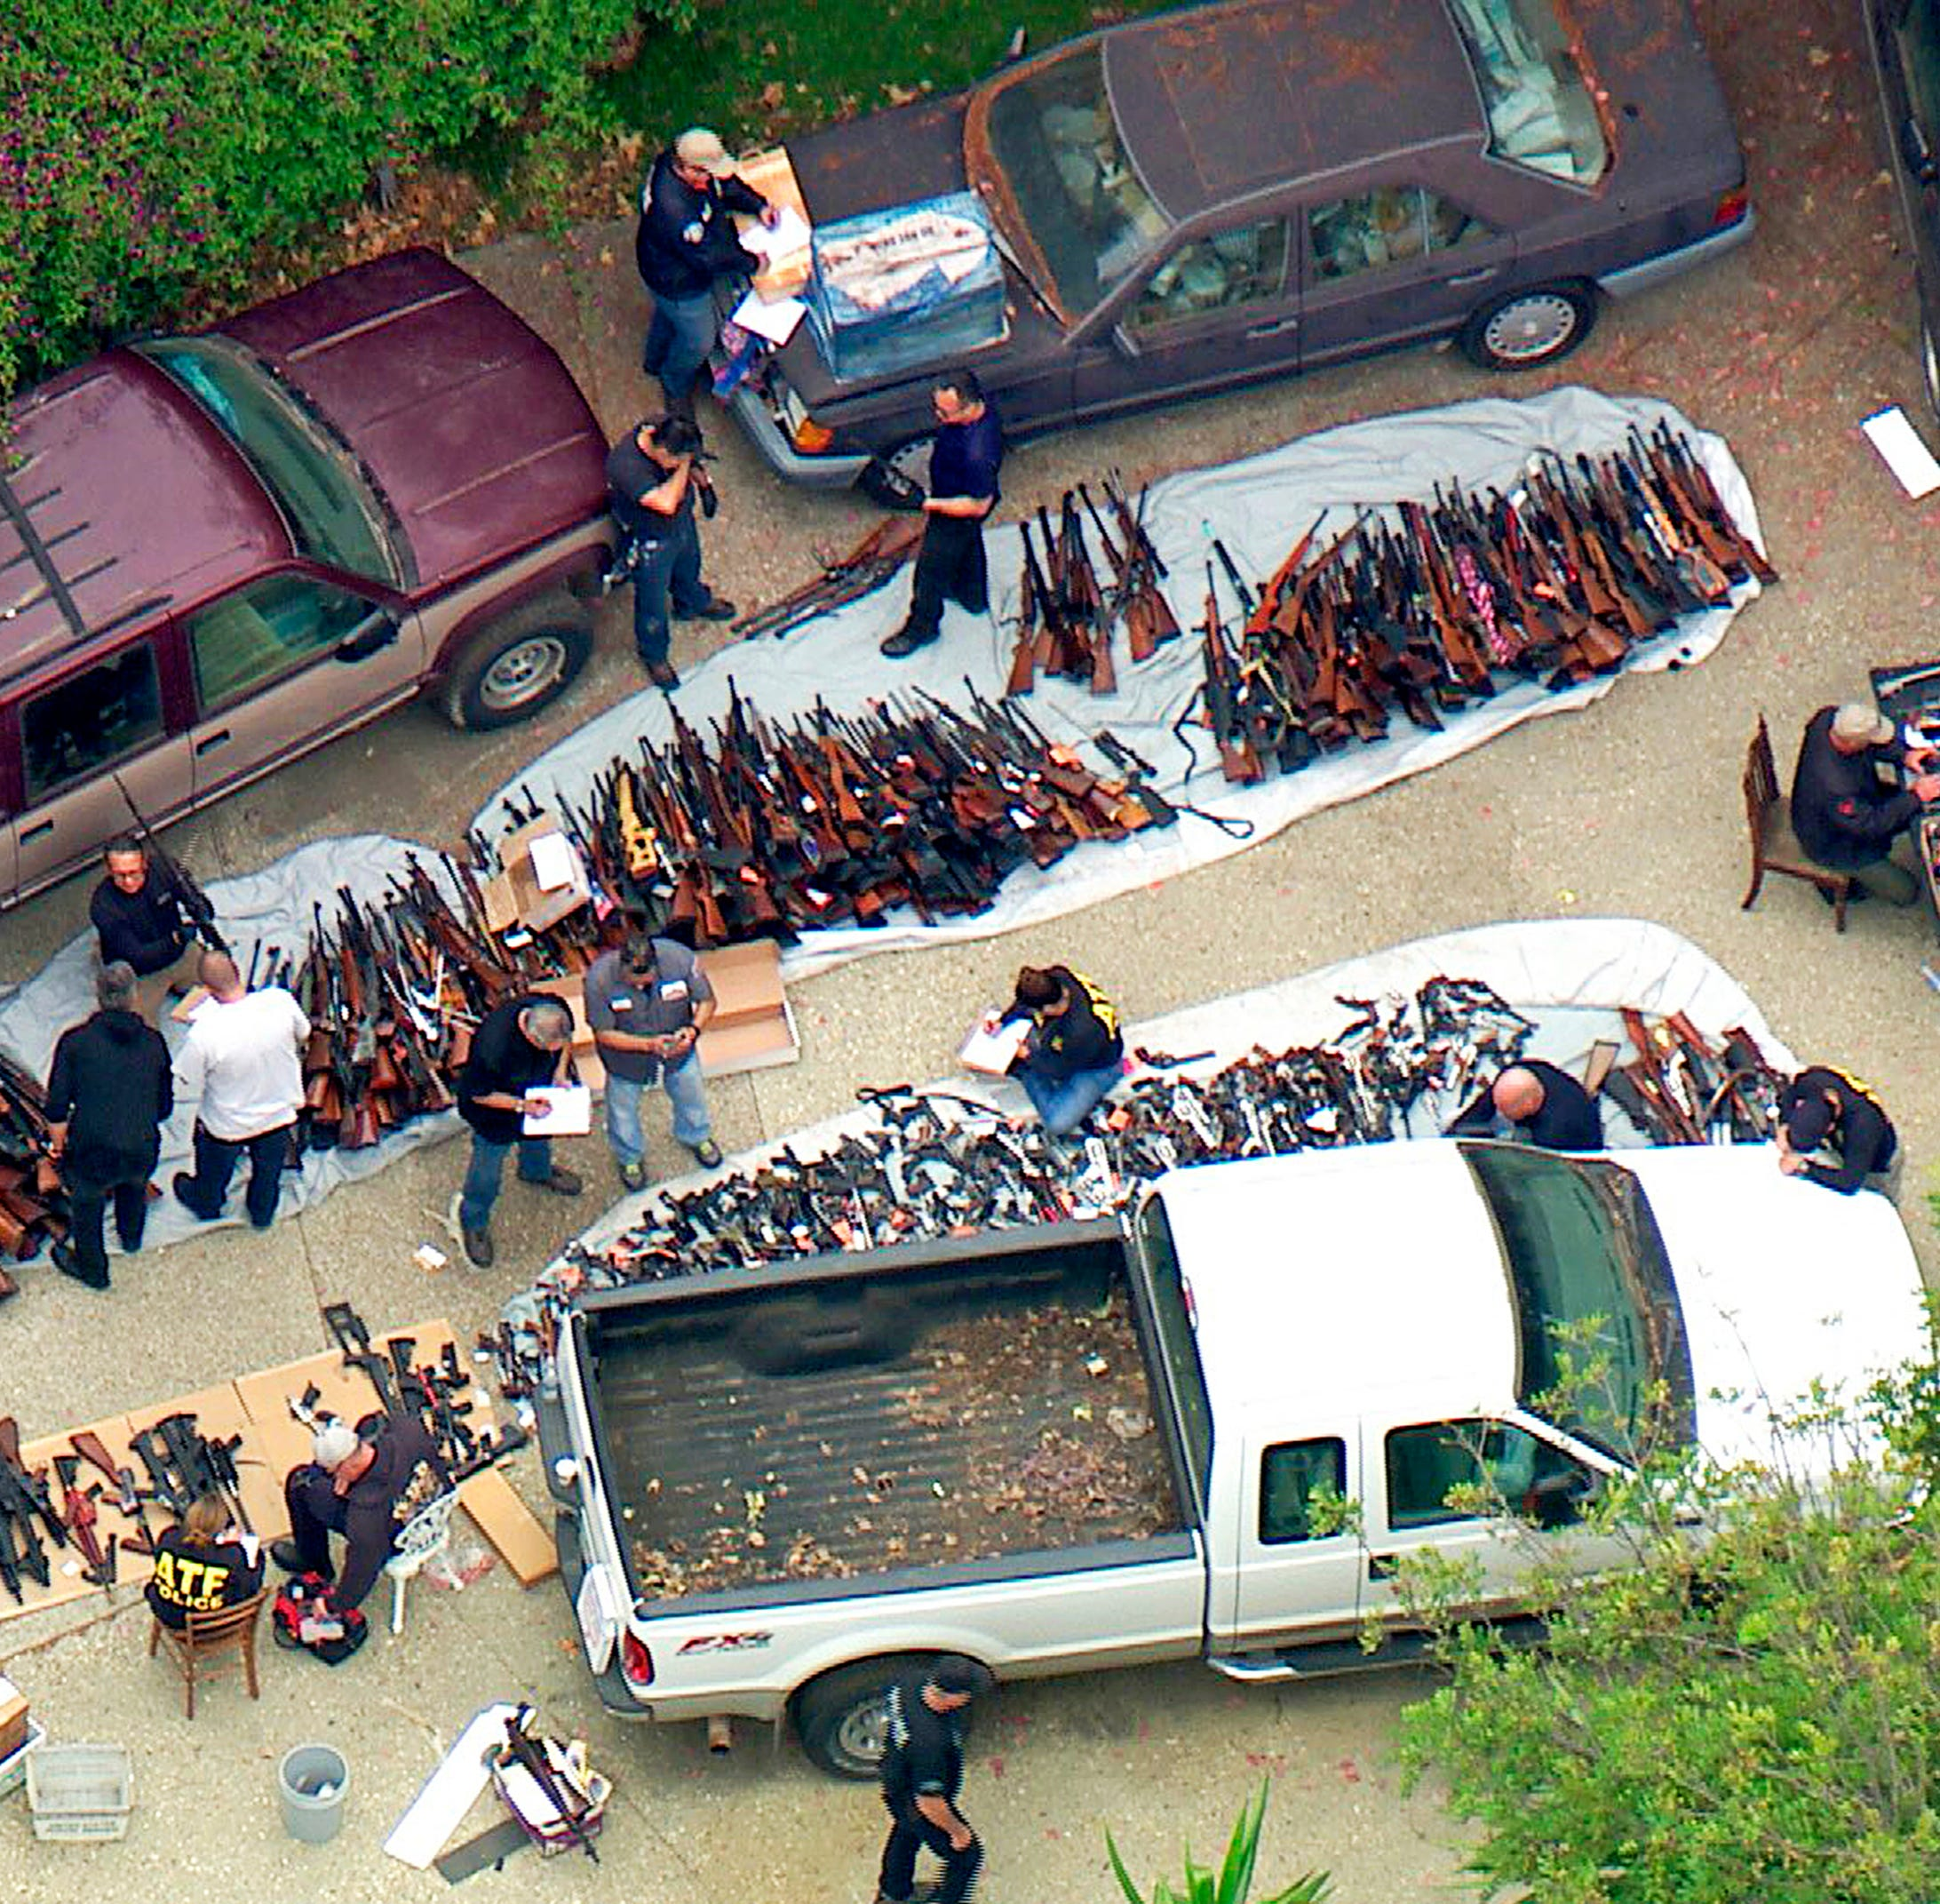 Police in Los Angeles seize more than 1,000 guns at home in posh Bel Air neighborhood